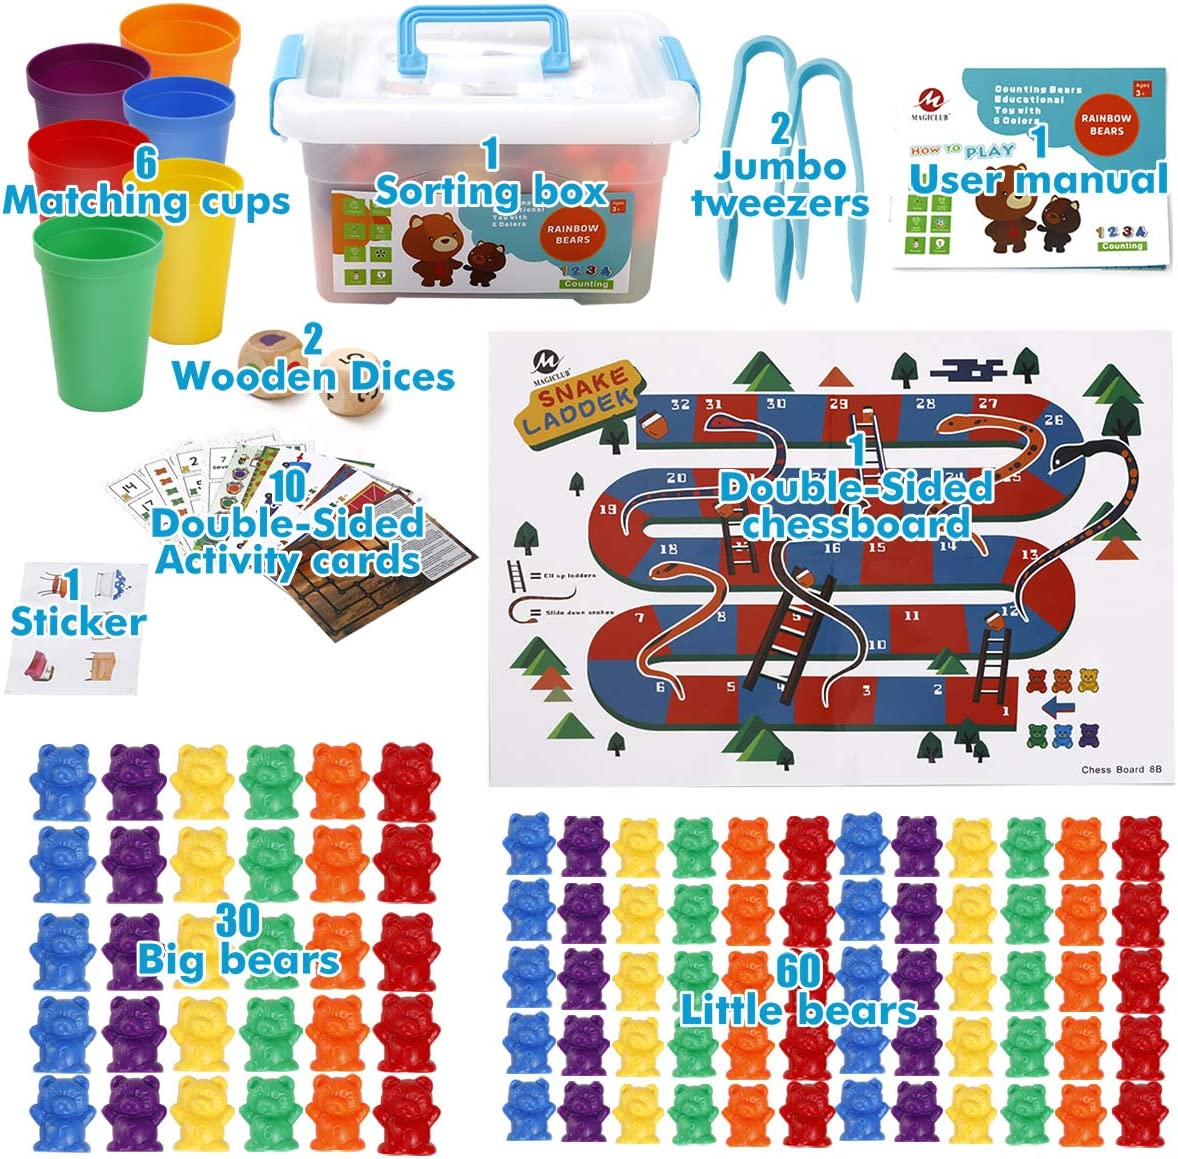 MAGICLUB Rainbow Counting Bears with Matching Sorting Cups,Number Color Recognition STEM Educational Toy for Toddler Preschool Math Manipulatives Toy with 90 Bears,2 Tweezers,10 Cards,1 Instruction